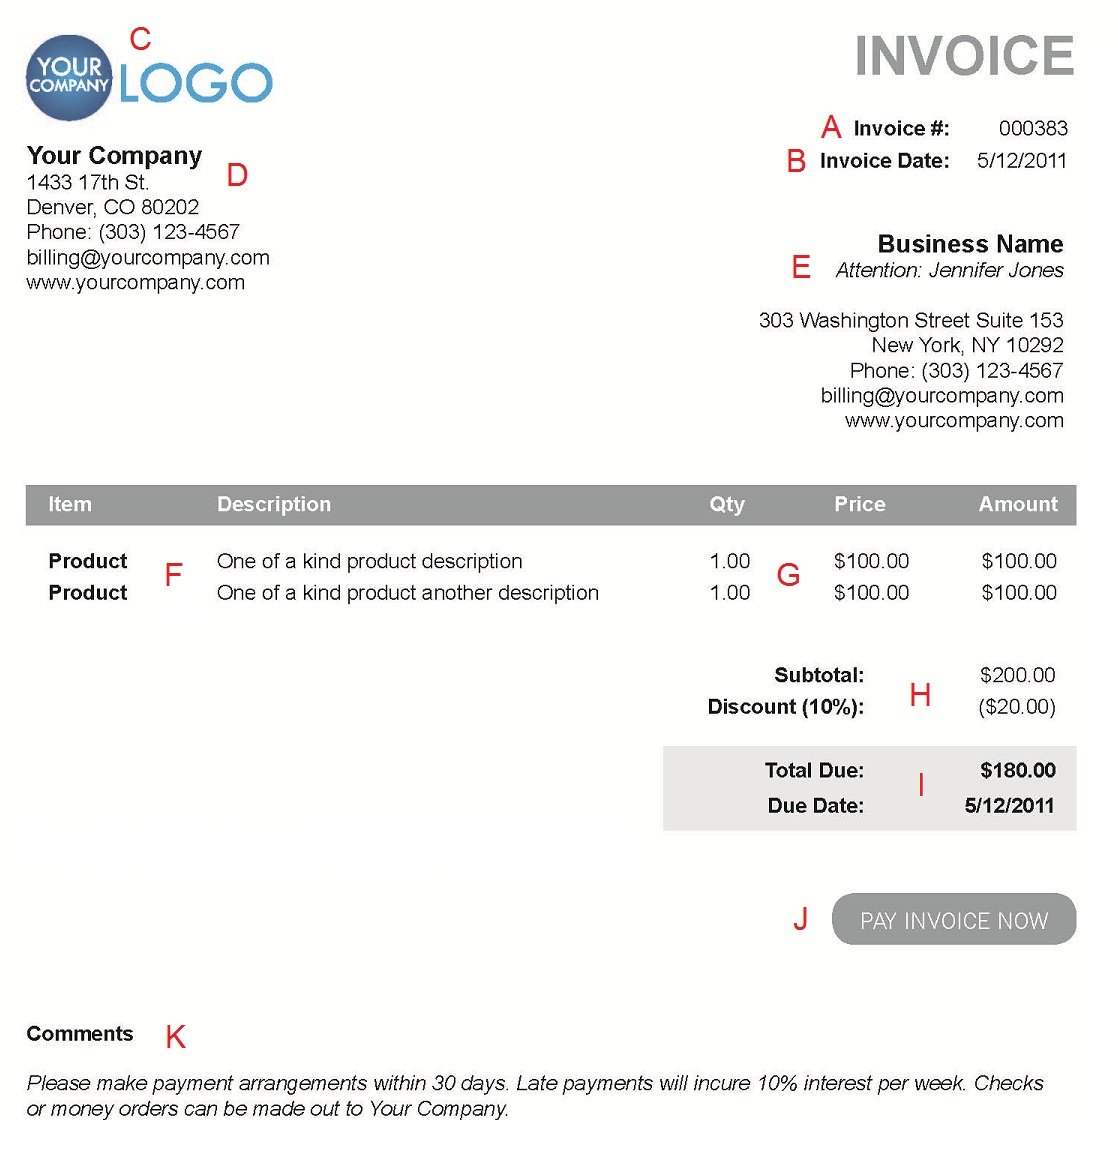 Modaoxus  Picturesque The  Different Sections Of An Electronic Payment Invoice With Inspiring A  With Amusing Quick Books Invoice Also Create Free Invoices In Addition Free Editable Invoice Template Pdf And Invoice For Free As Well As Rental Invoice Template Word Additionally Quest Diagnostics Invoice From Paysimplecom With Modaoxus  Inspiring The  Different Sections Of An Electronic Payment Invoice With Amusing A  And Picturesque Quick Books Invoice Also Create Free Invoices In Addition Free Editable Invoice Template Pdf From Paysimplecom